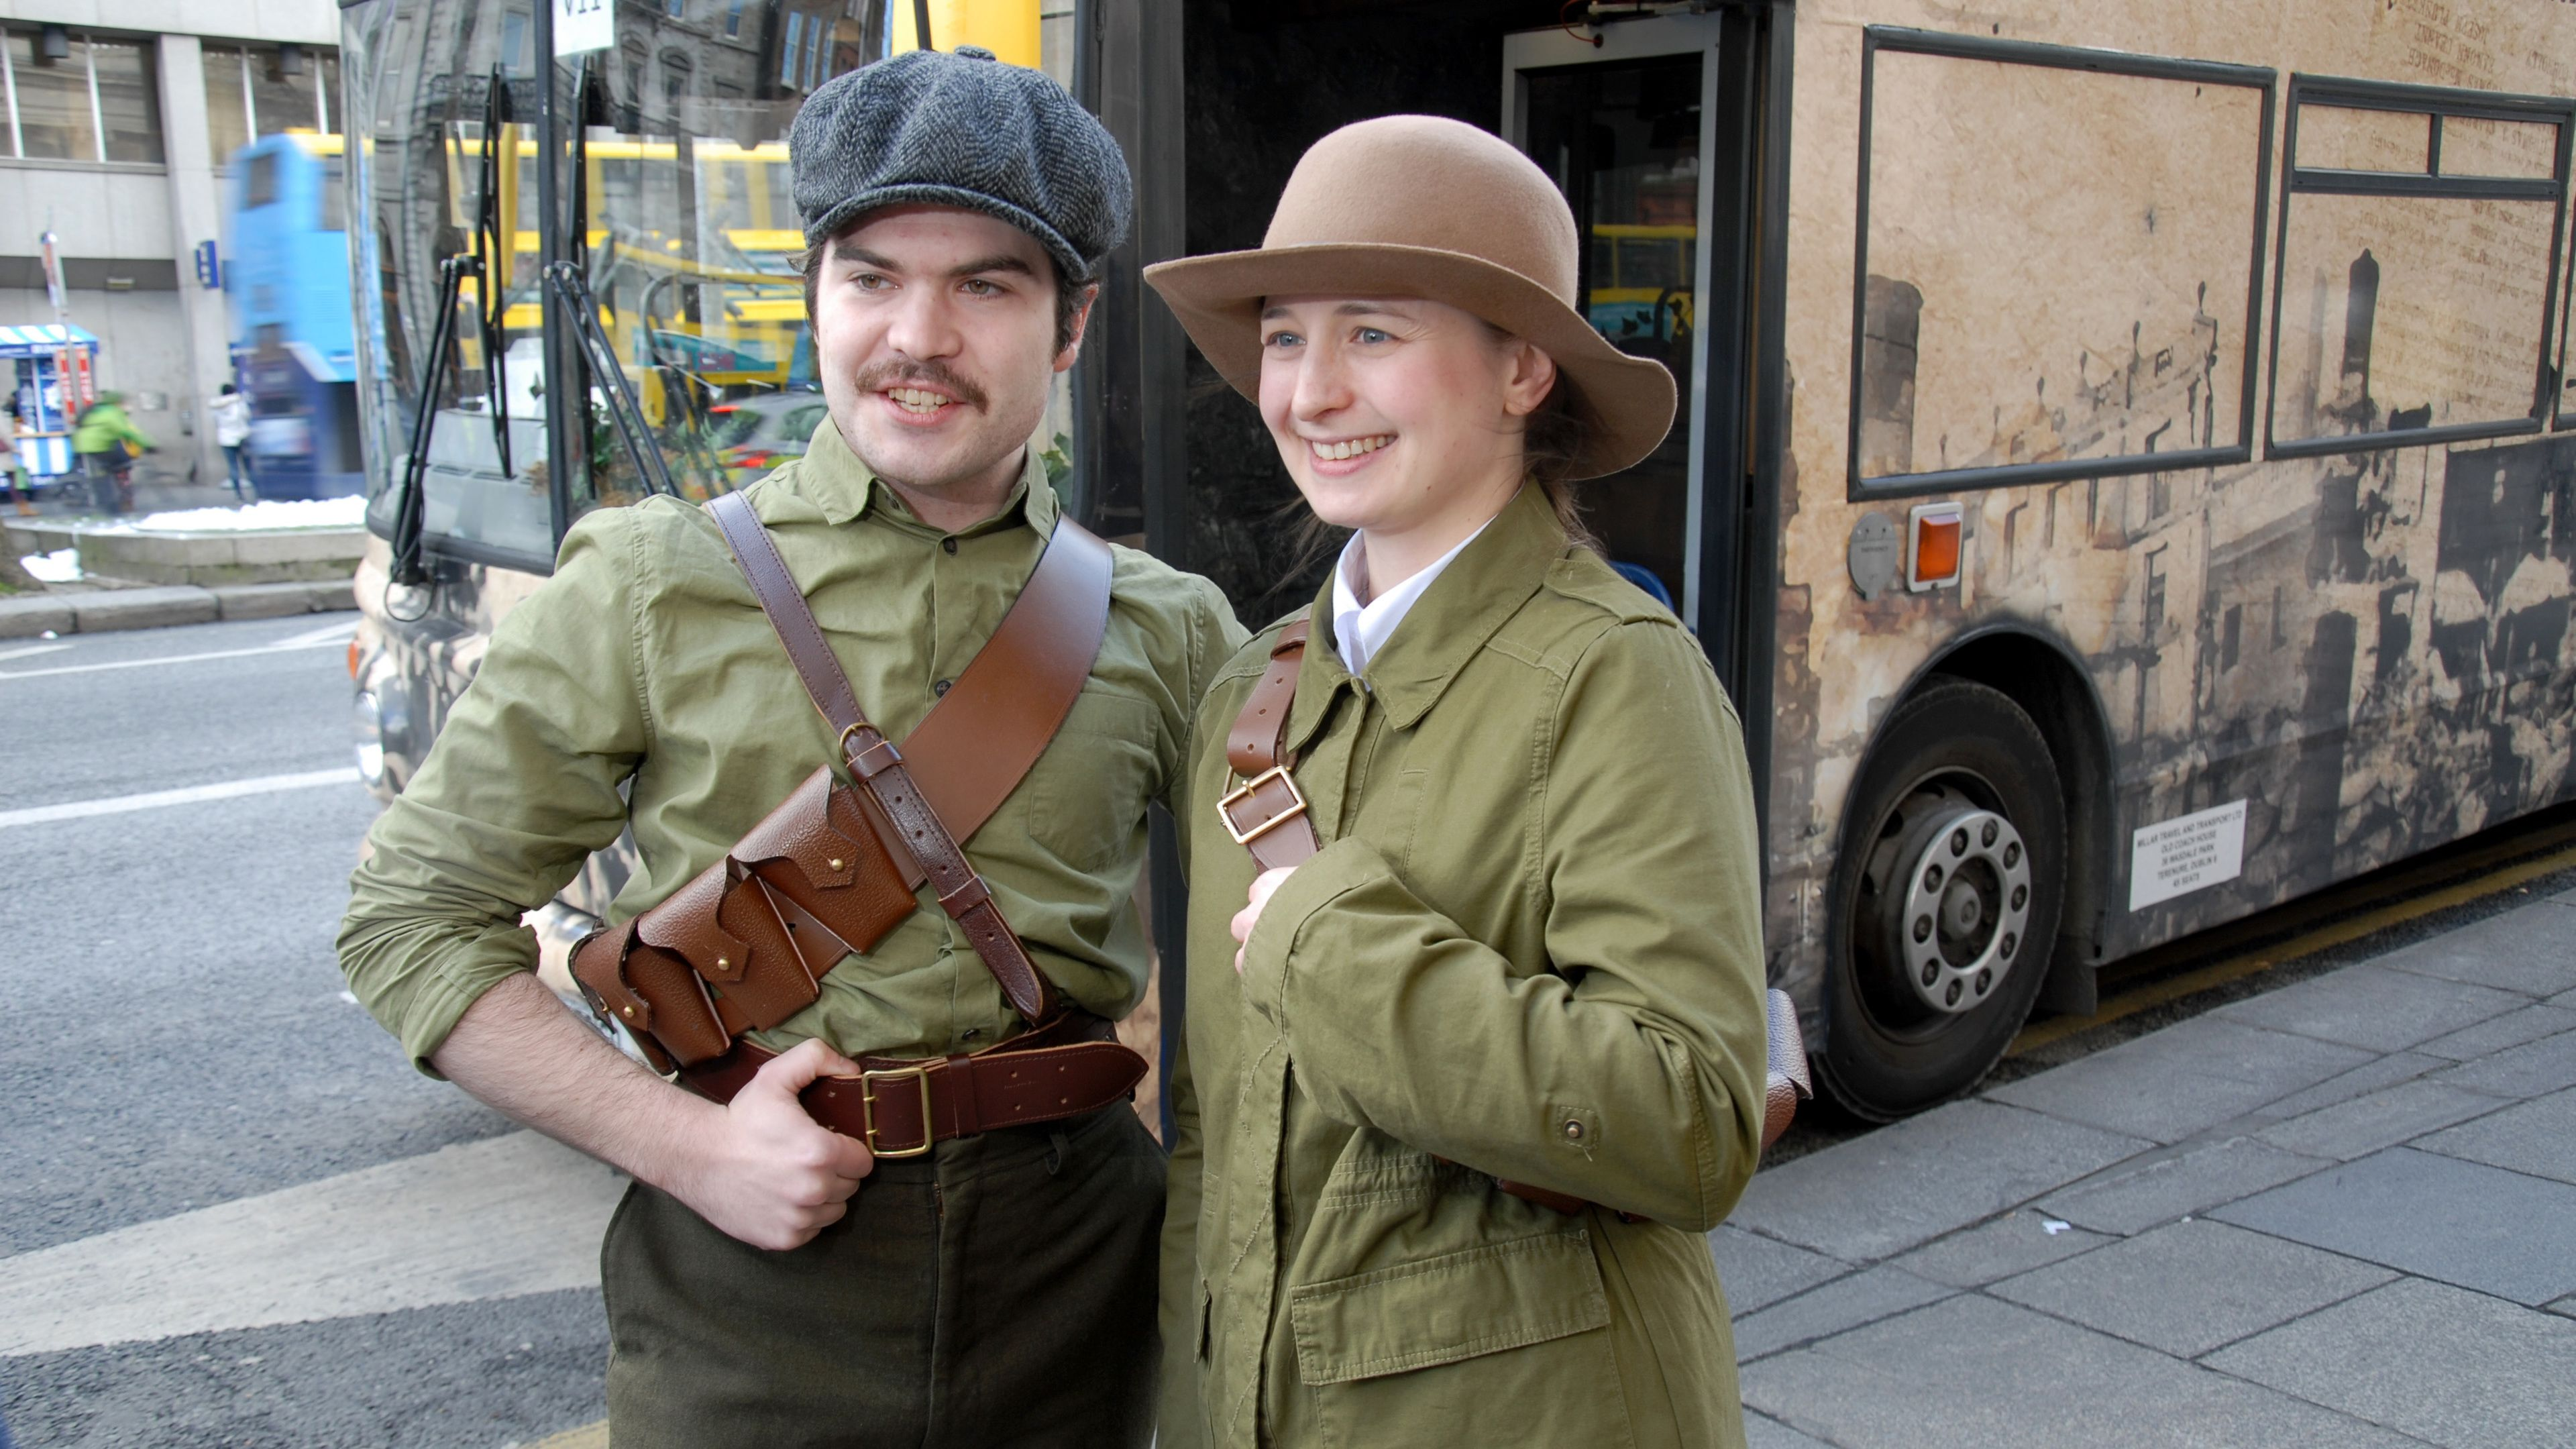 Tour guides in costume in Dublin